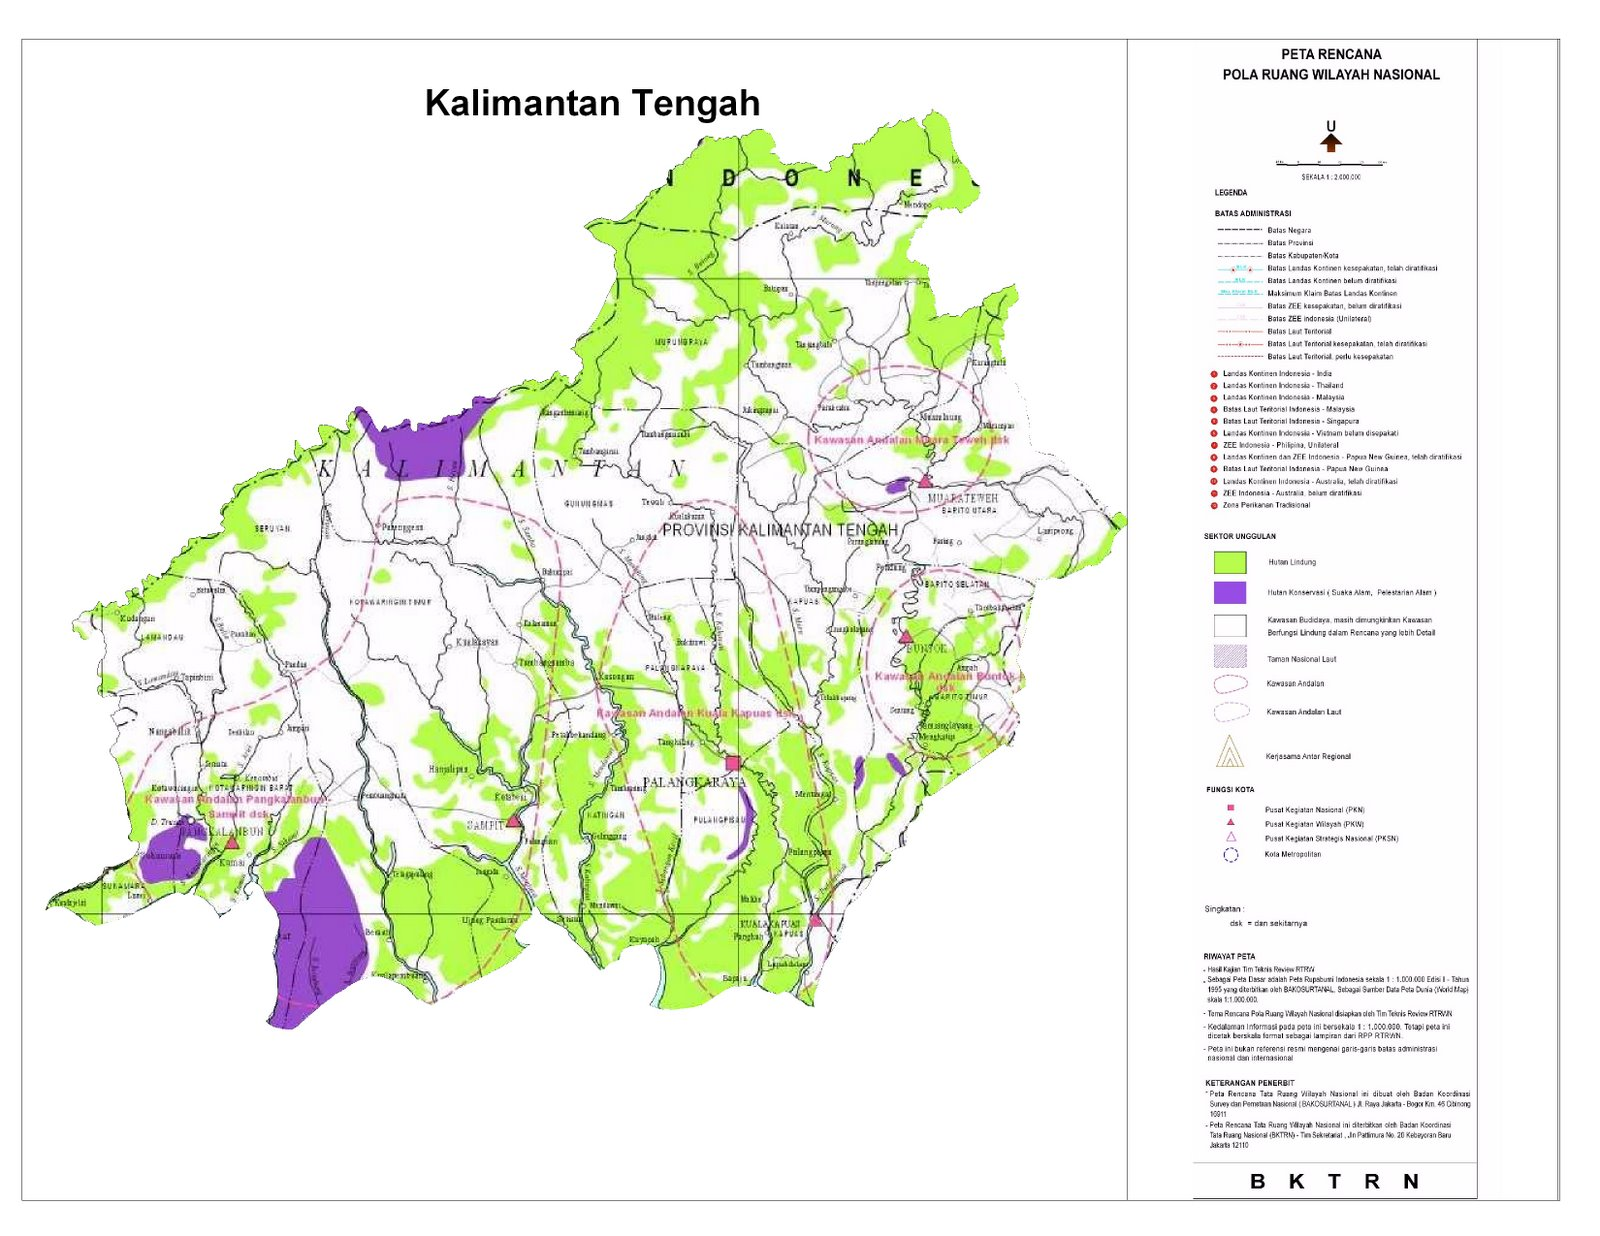 sengon wood: Projection Of National Land Use planning at 7 Province